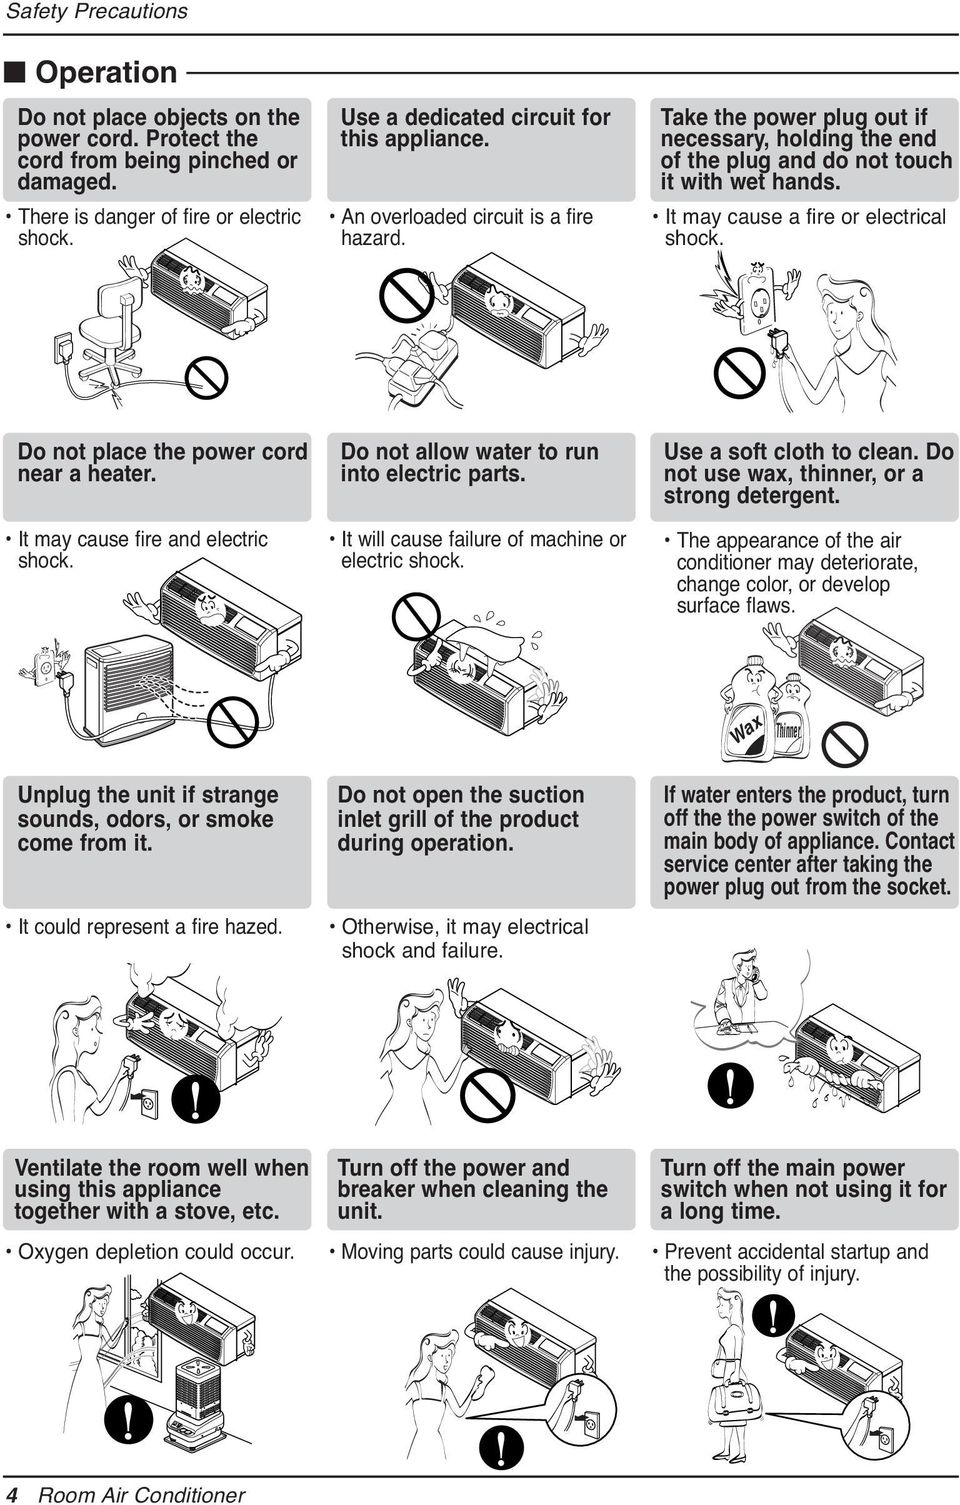 It may cause a fire or electrical shock. Do not place the power cord near a heater. It may cause fire and electric shock. Do not allow water to run into electric parts.